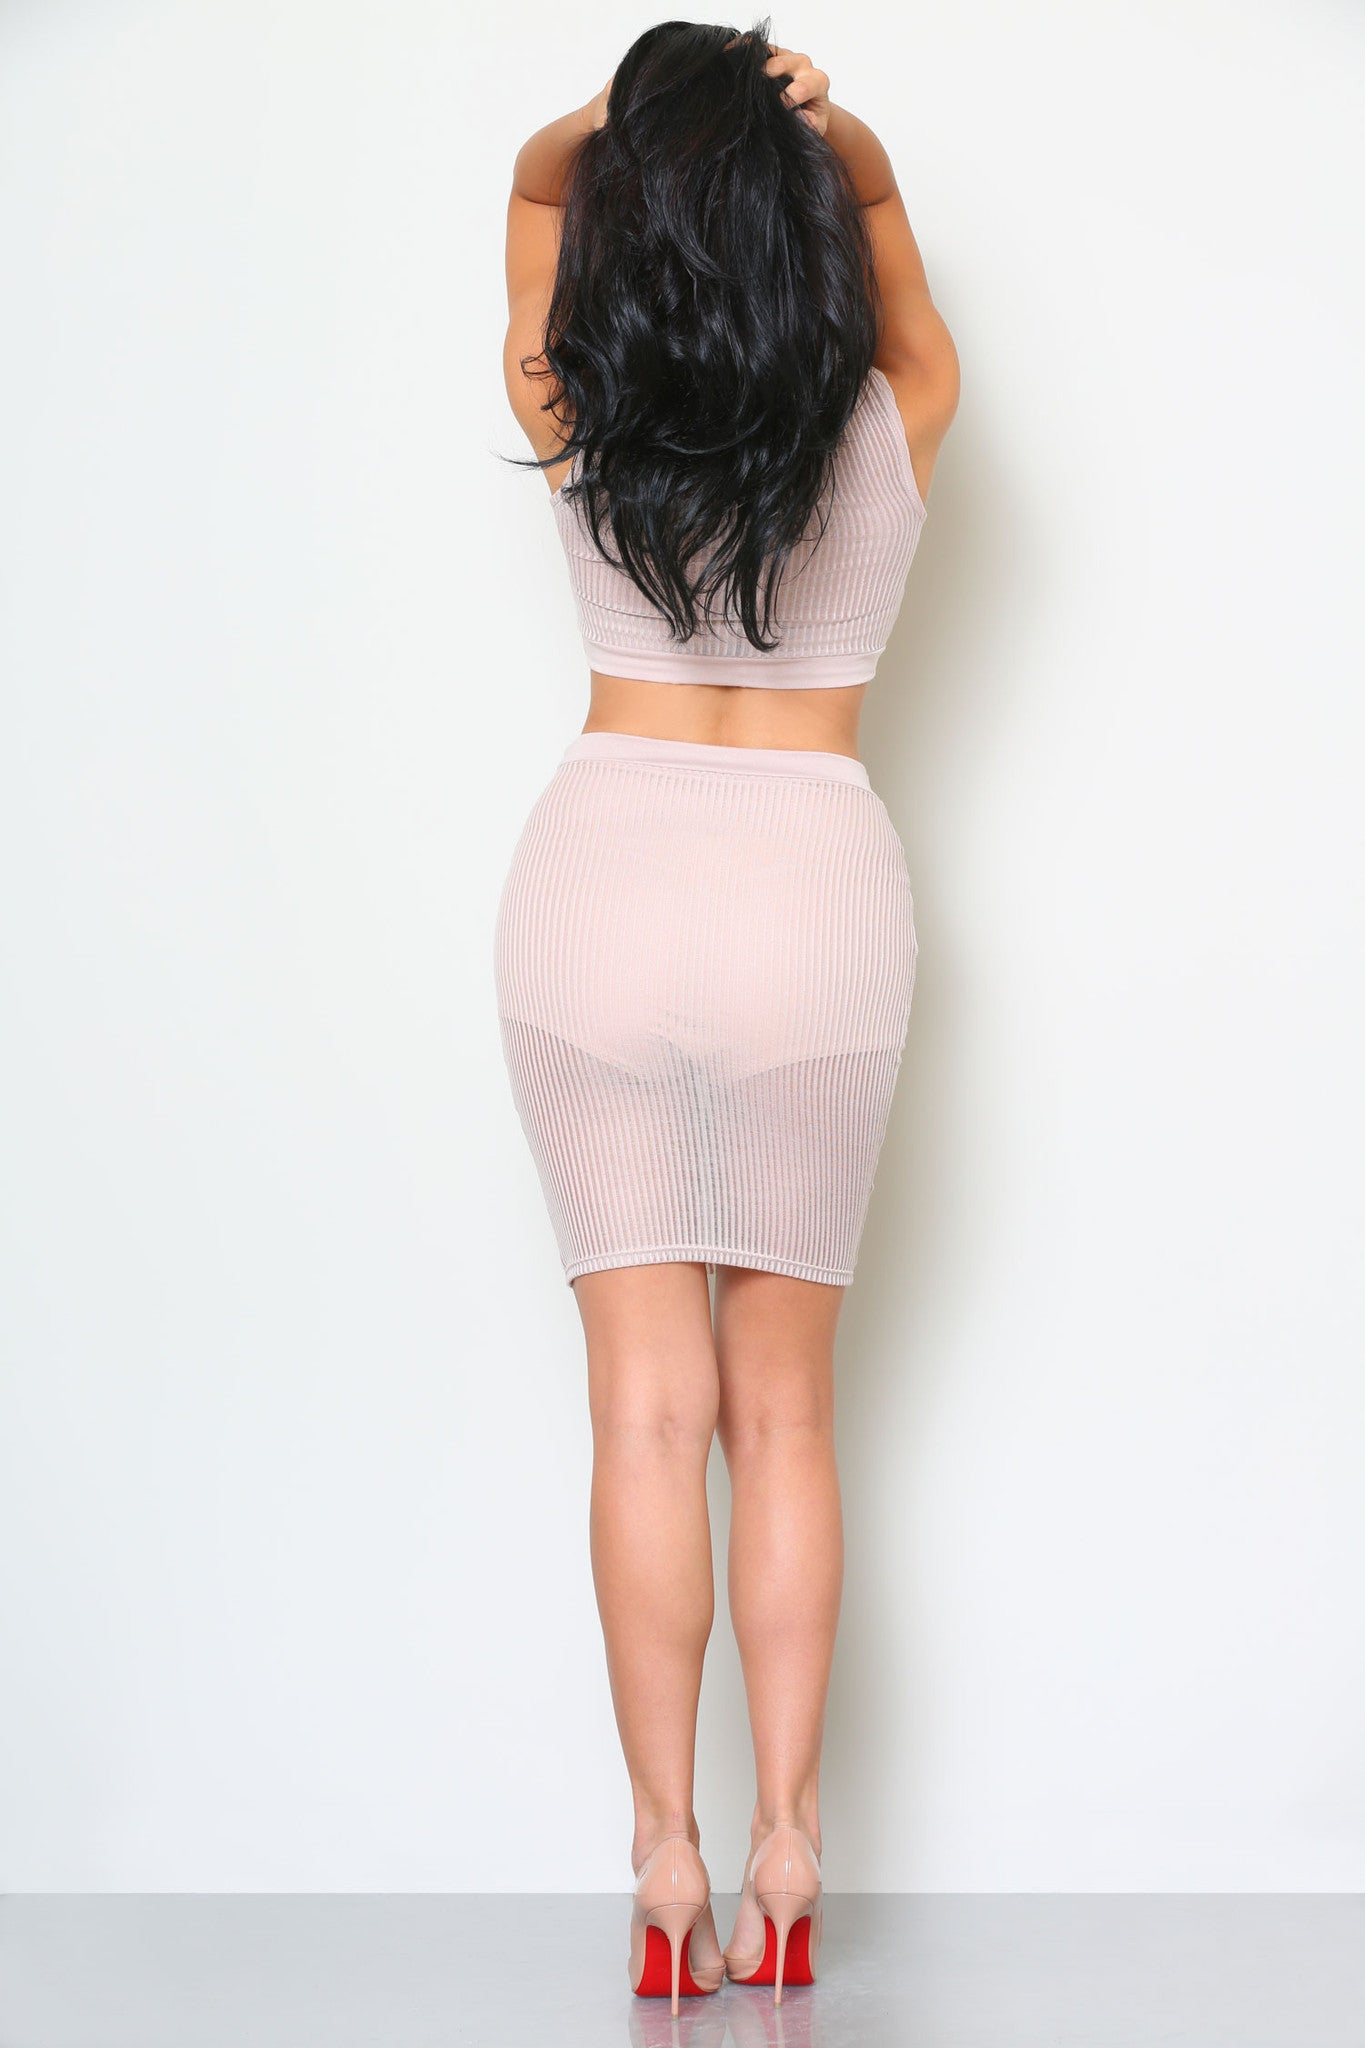 HELENA CROP TOP AND SKIRT SET (SOLD SEPARATELY) - Glam Envy - 3